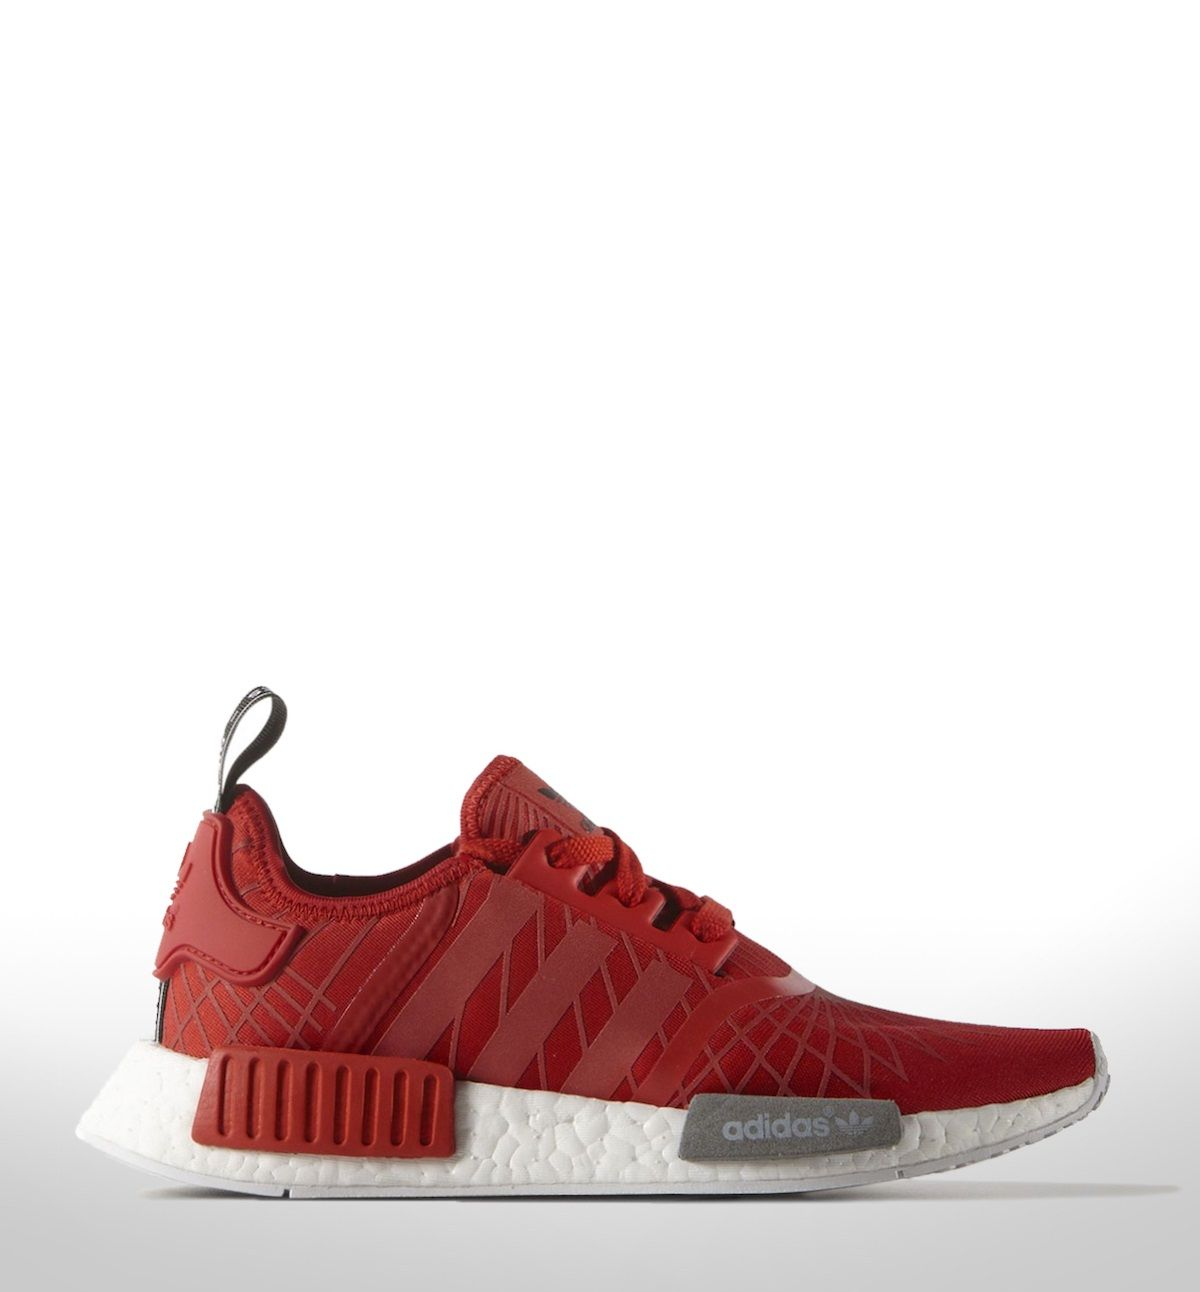 adidas originals nmd red sneakers pinterest nmd adidas and